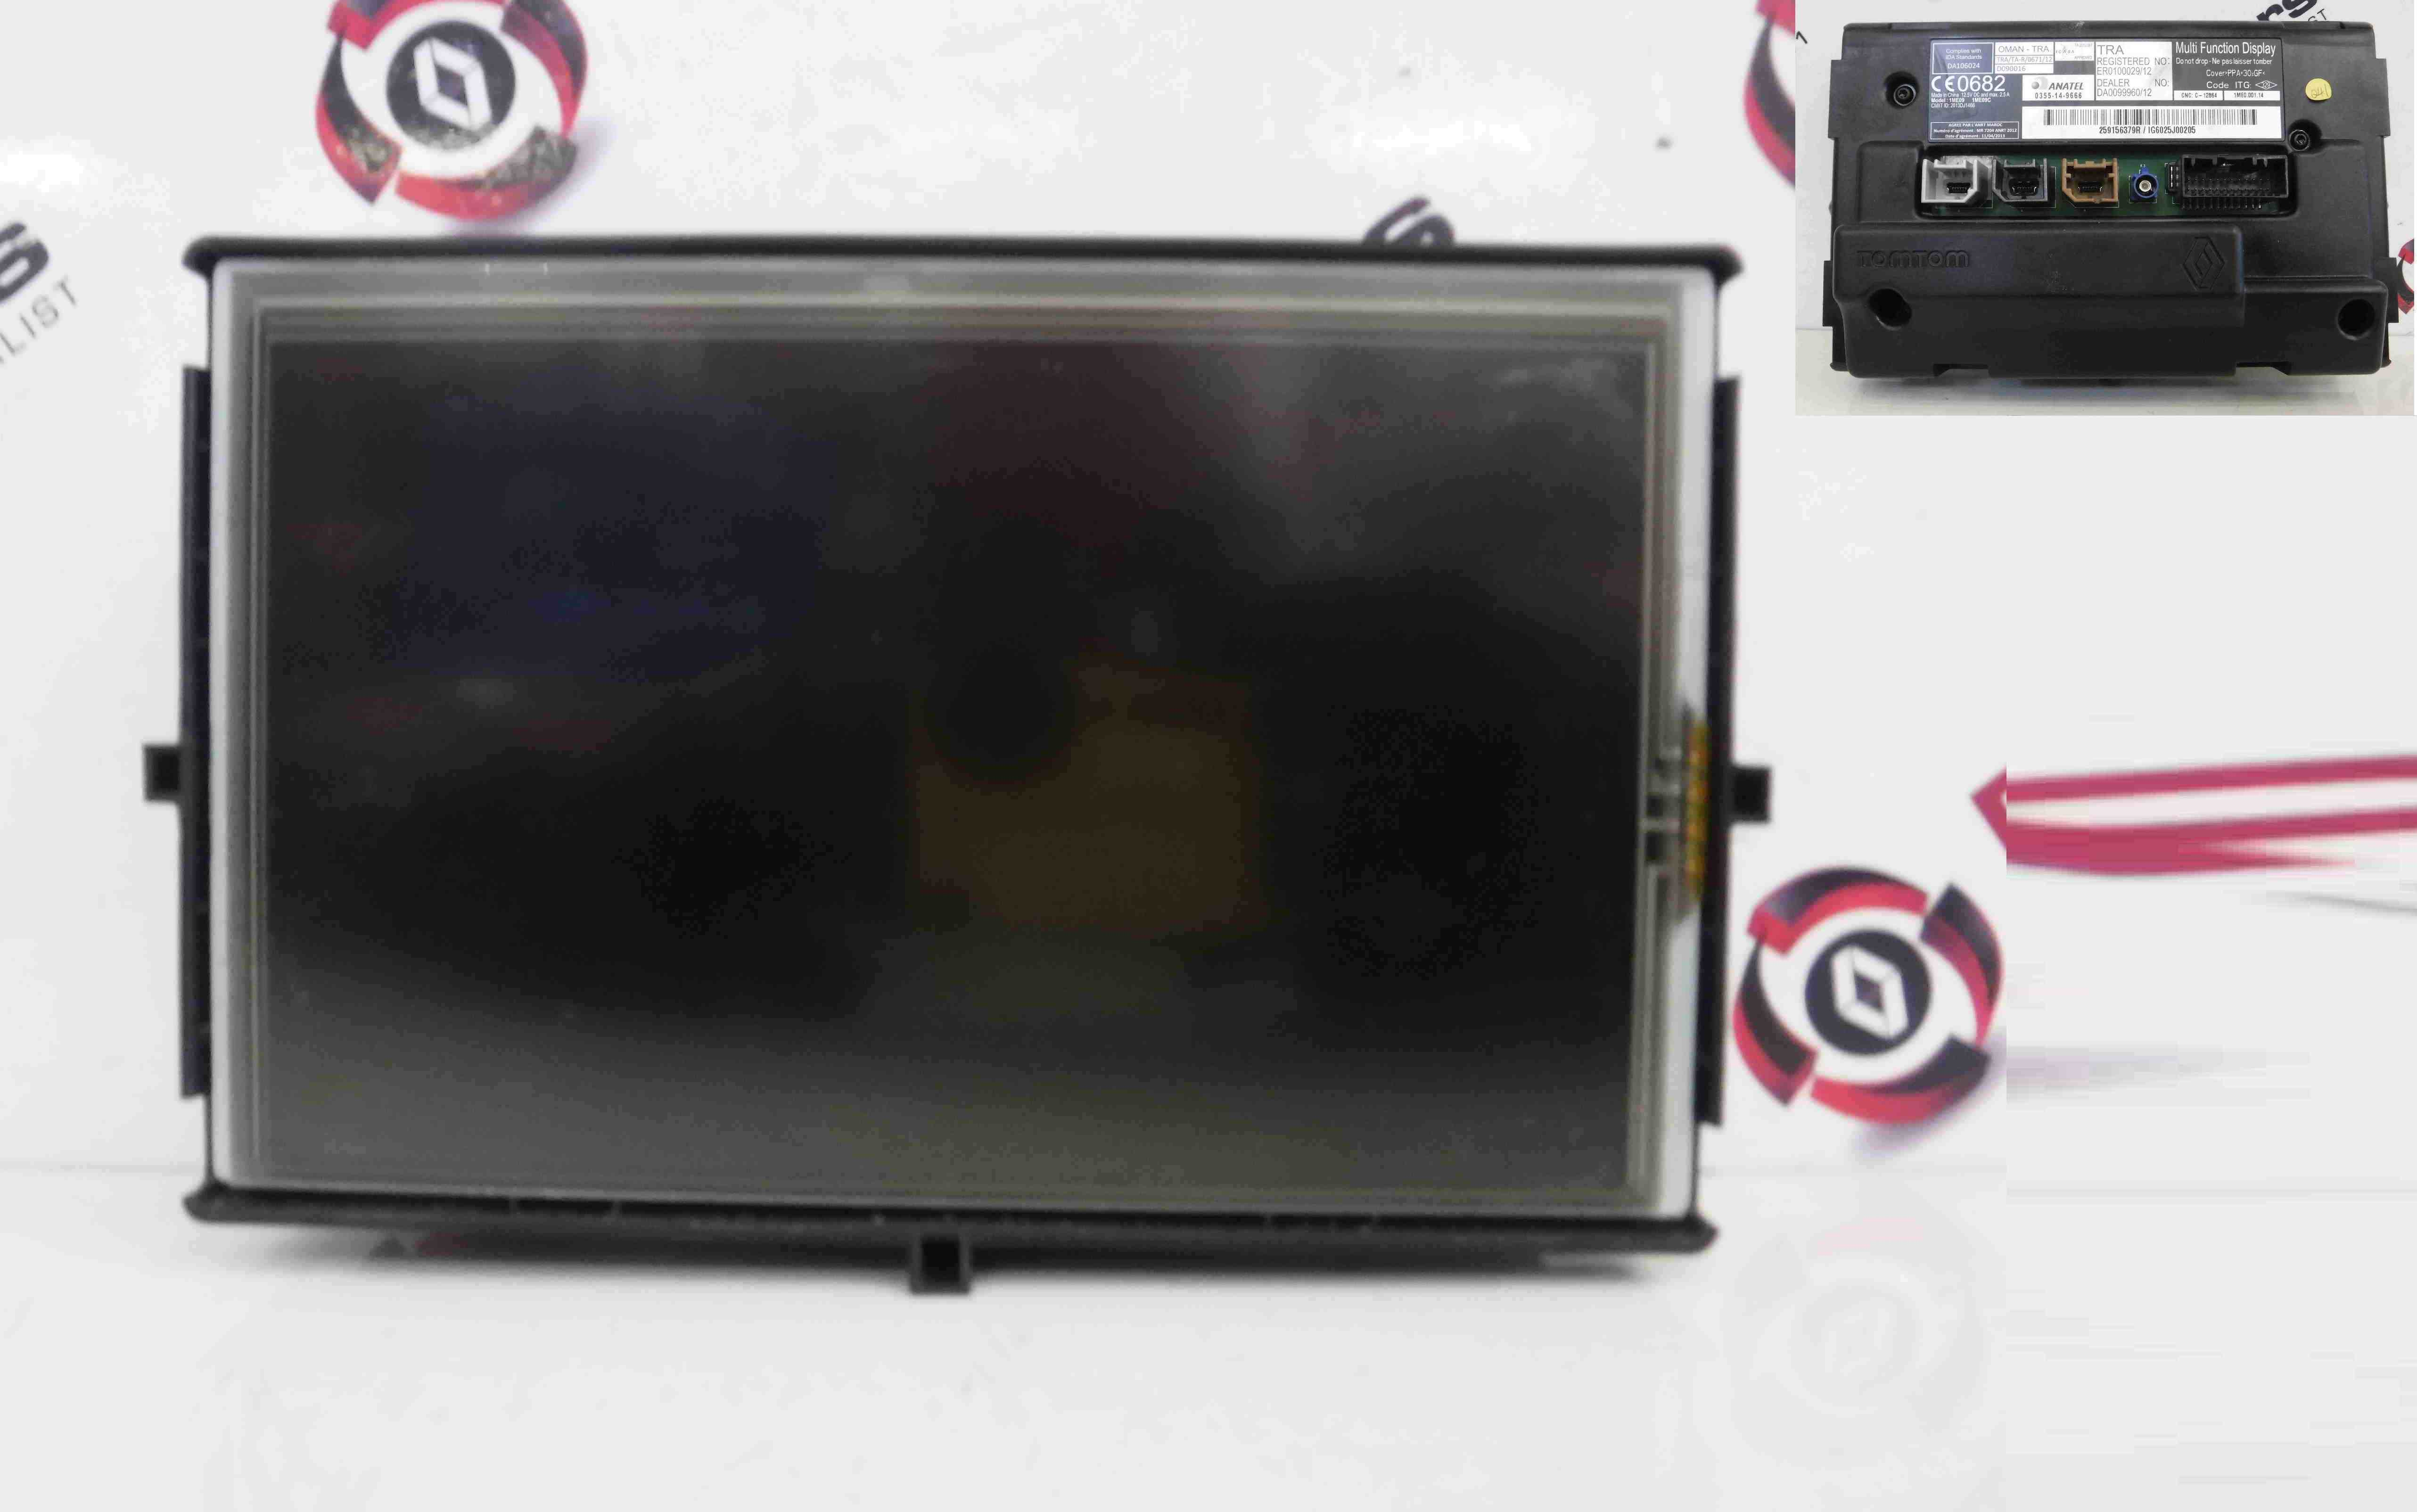 Renault Captur Clio Zoe 2013-2015 TOM TOM Sat Nav Screen Display 259156379r